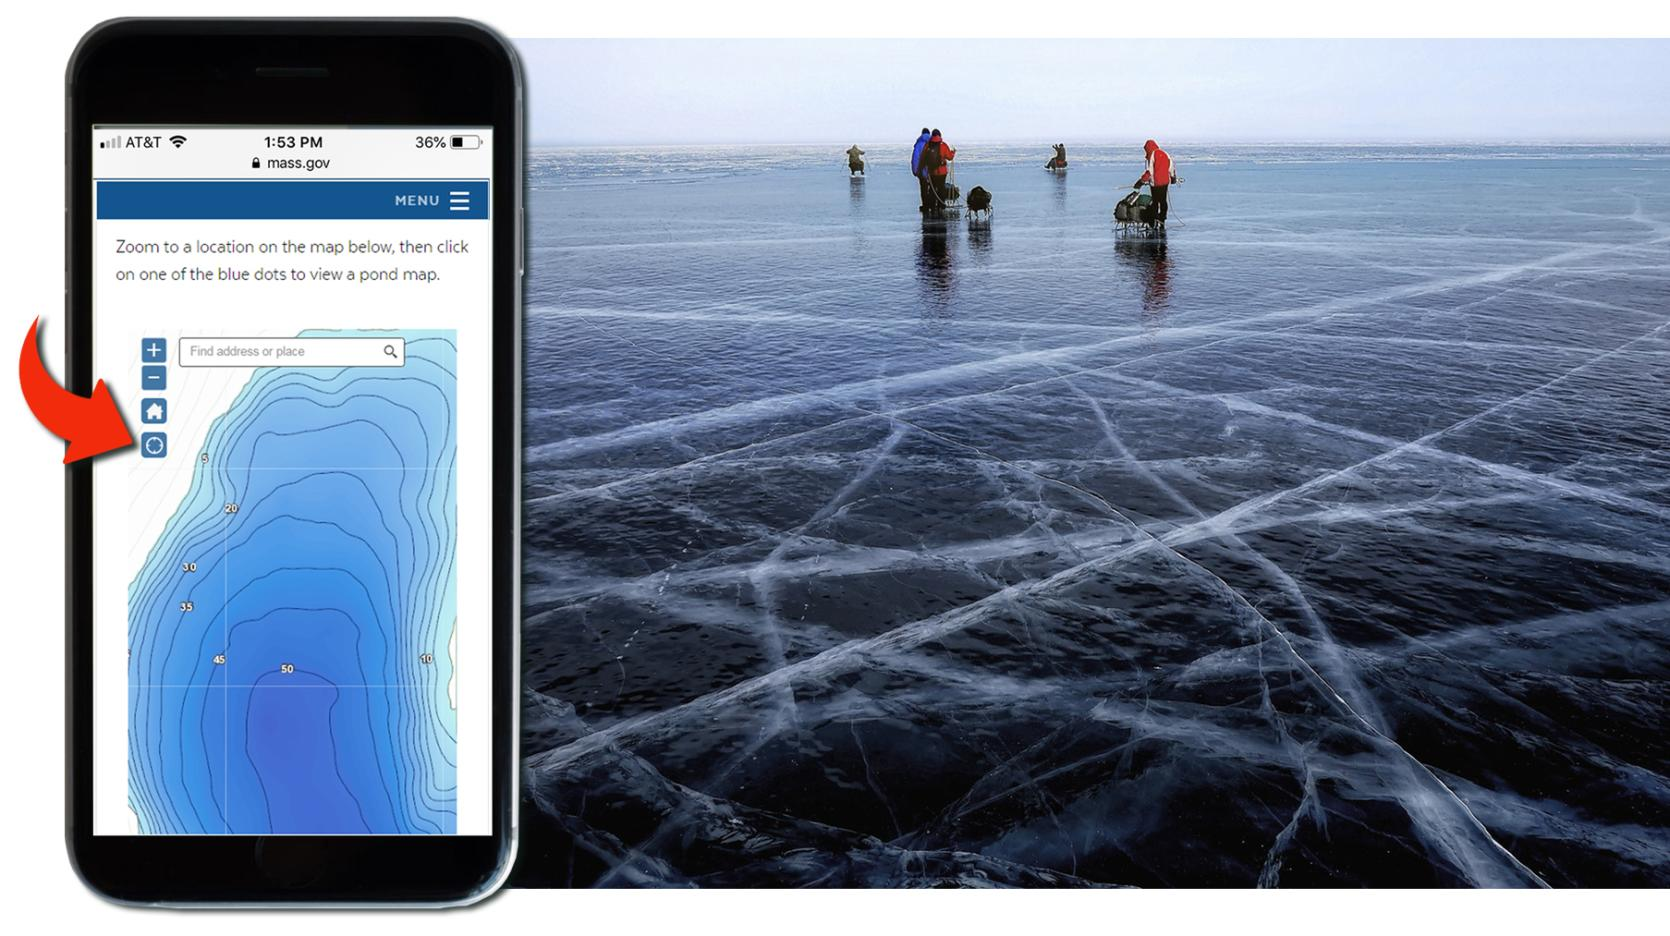 ice fishing app on the phone